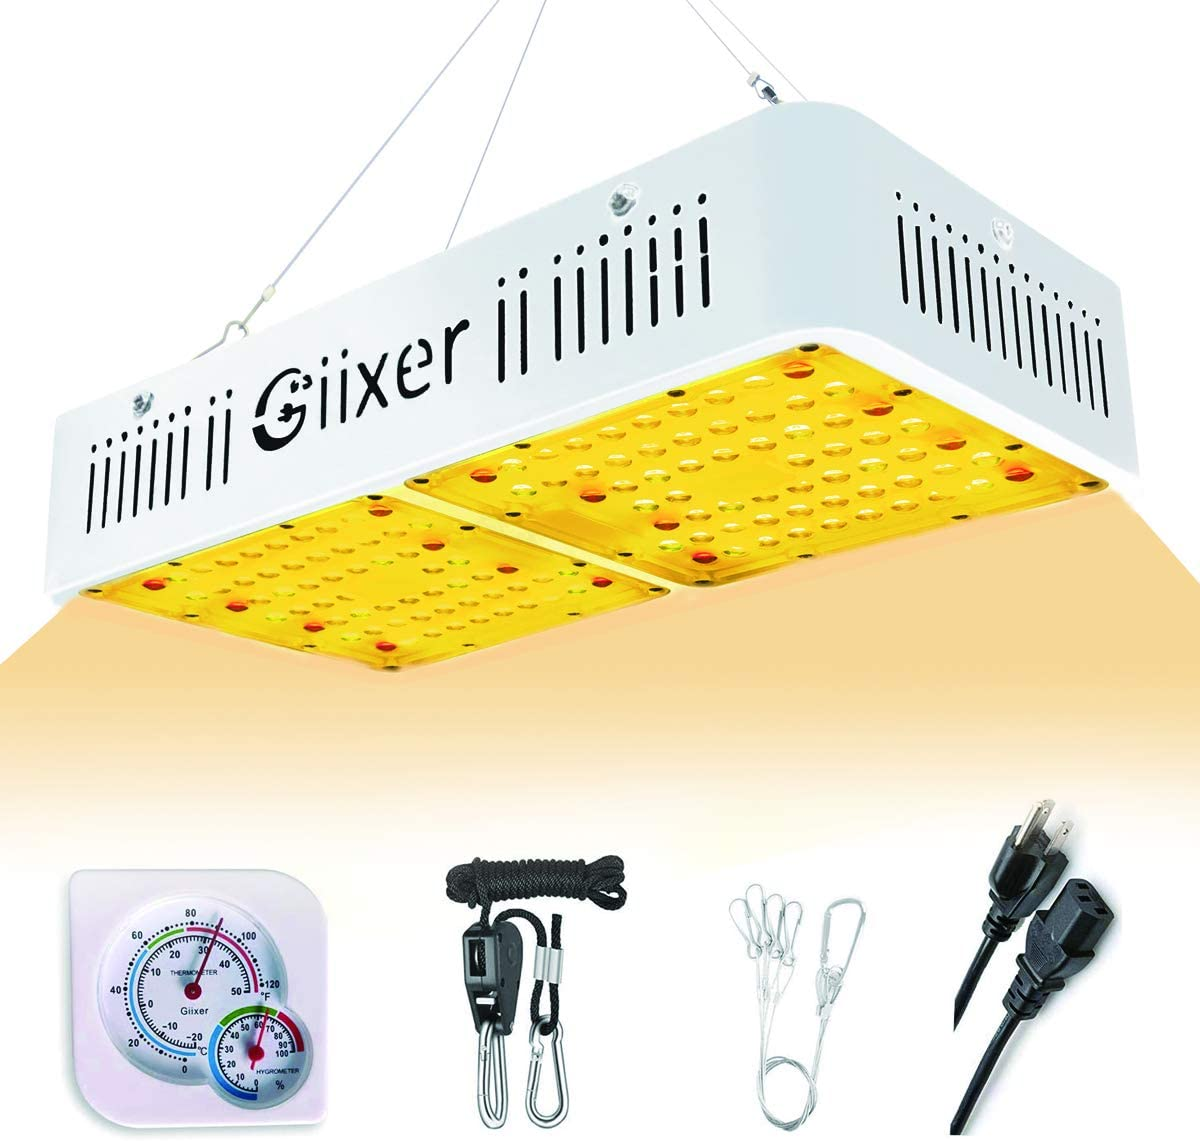 Giixer LED Grow Light 1000W Plus Full Spectrum High PAR Value Simulated Sunlight Plant Light for Hydroponic Indoor Plants Seeding Growing Flowering SMD 128LEDs Optical Lens